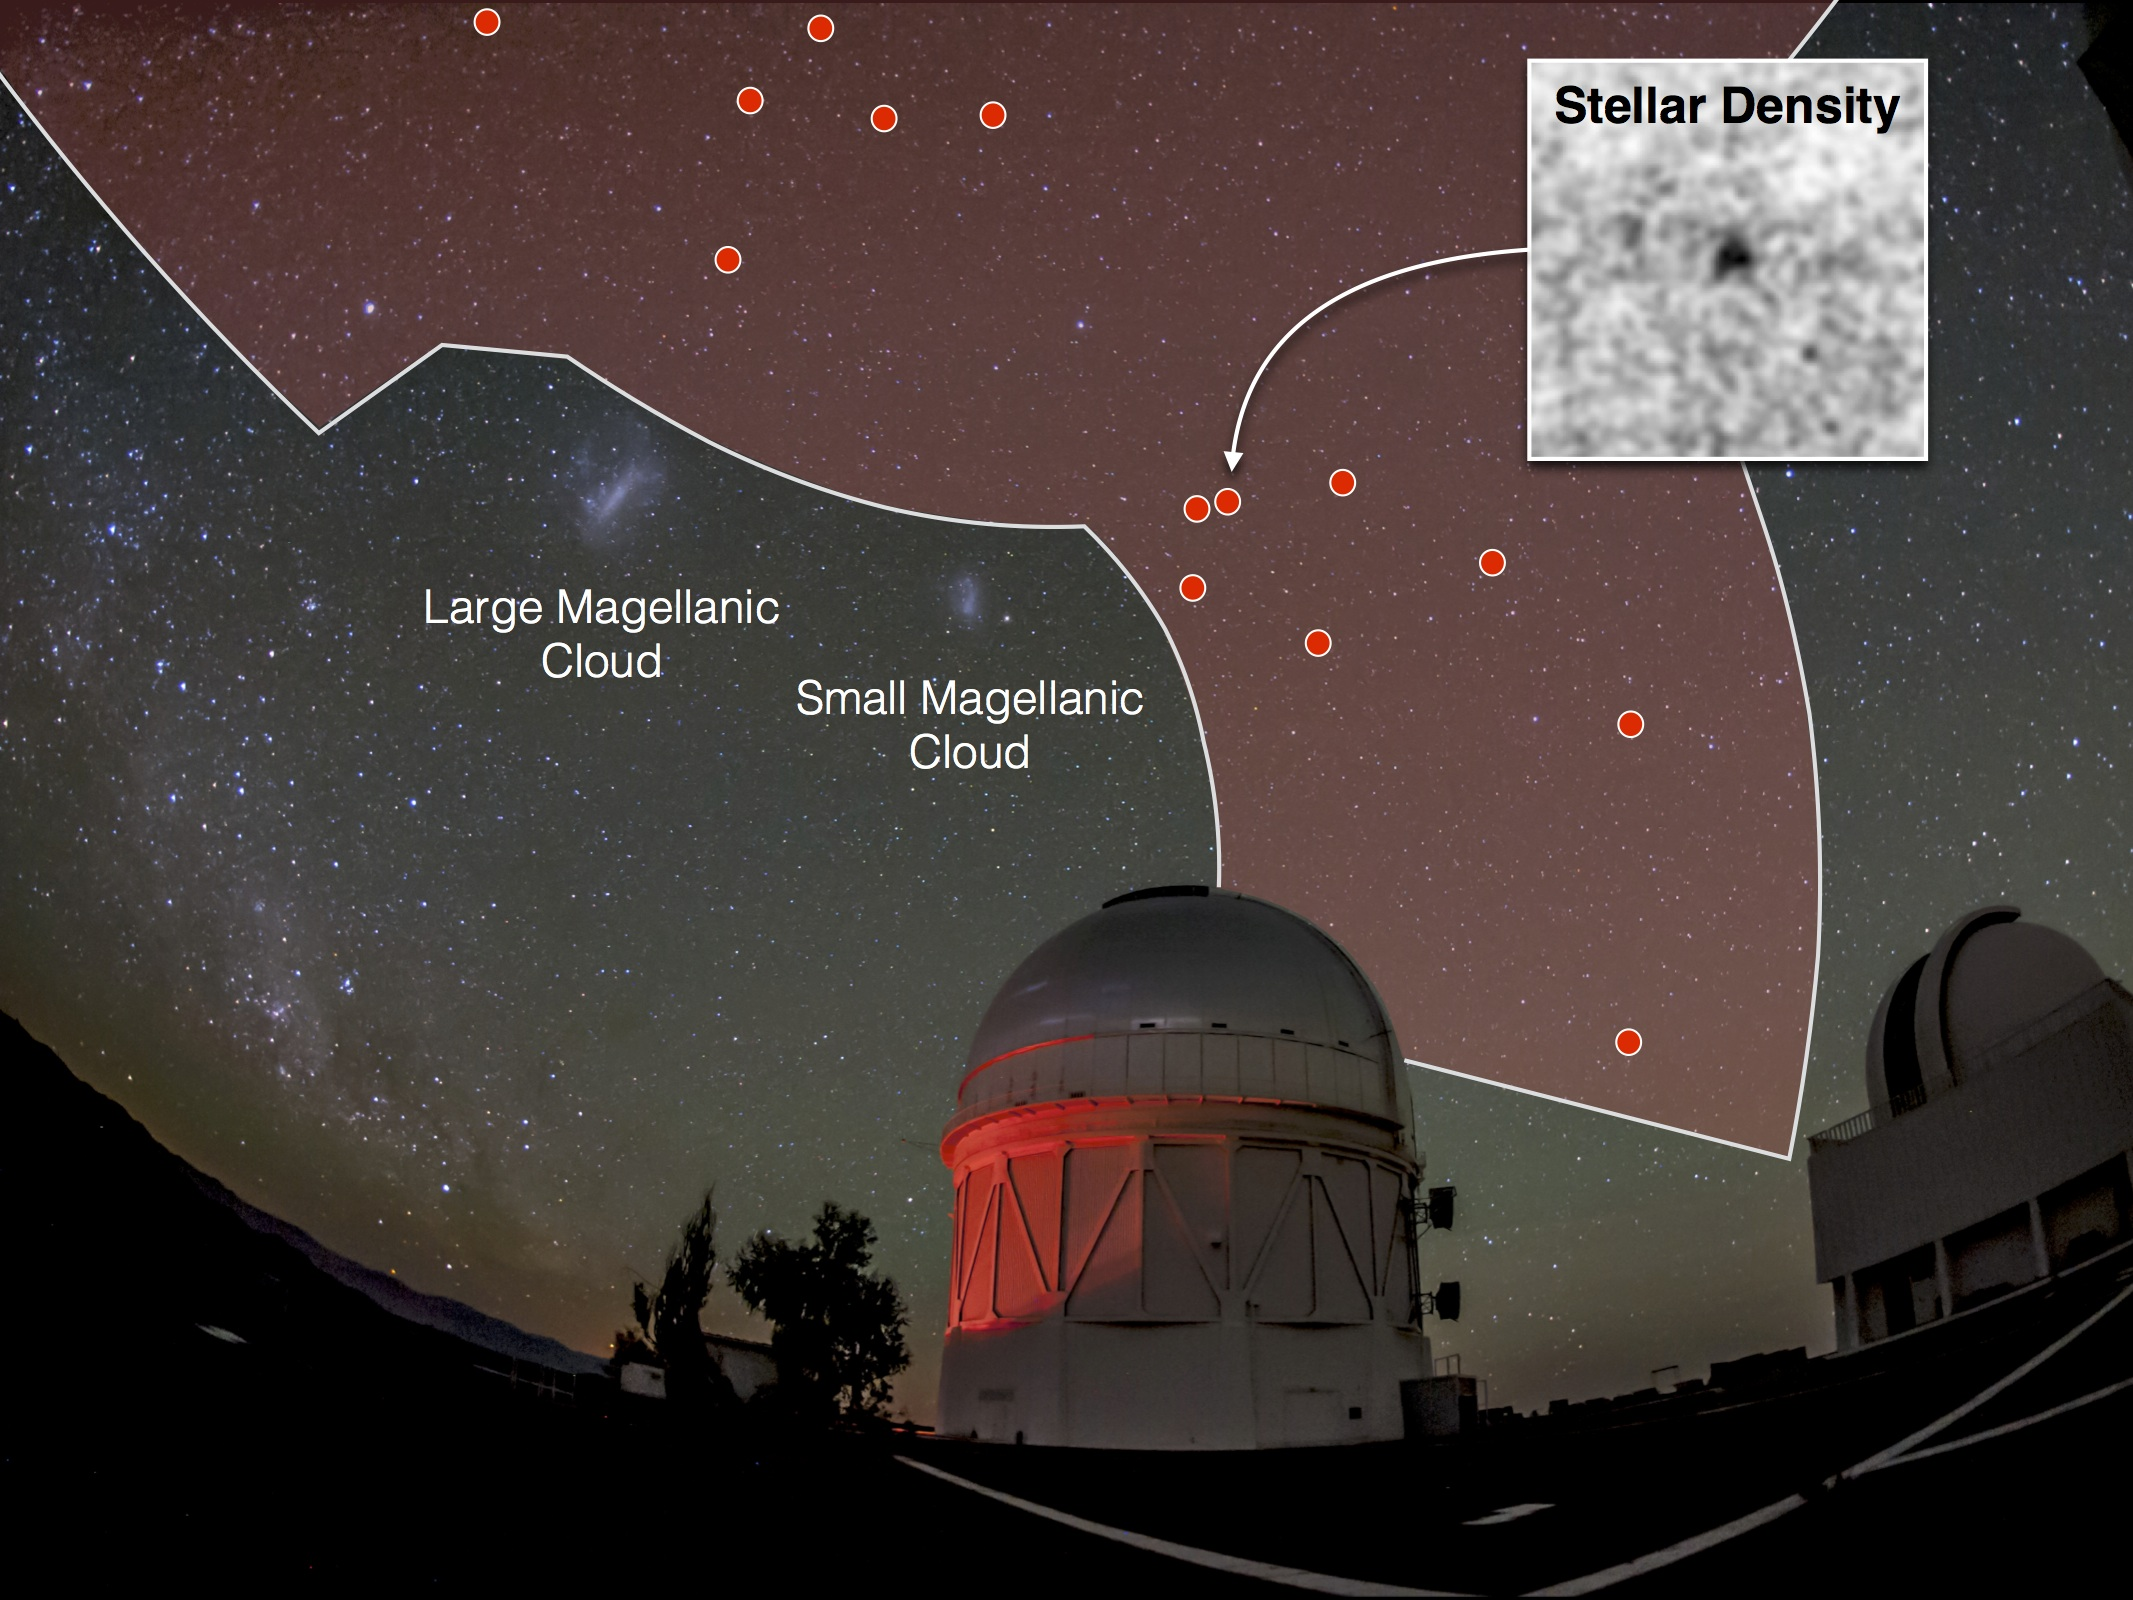 "The Dark Energy Survey has now mapped one-eighth of the full sky (red shaded region) using the Dark Energy Camera on the Blanco telescope at the Cerro Tololo Inter-American Observatory in Chile (foreground). This map has led to the discovery of 17 dwarf galaxy candidates in the past six months (red dots), including eight new candidates announced today. Several of the candidates are in close proximity to the two largest dwarf galaxies orbiting the Milky Way, the Large and Small Magellanic Clouds, both of which are visible to the unaided eye. By comparison, the new stellar systems are so faint that they are difficult to ""see"" even in the deep DES images and can be more easily visualized using maps of the stellar density (inset). Fourteen of the dwarf galaxy candidates found in DES data are visible in this particular image. Illustration: Dark Energy Survey Collaboration"